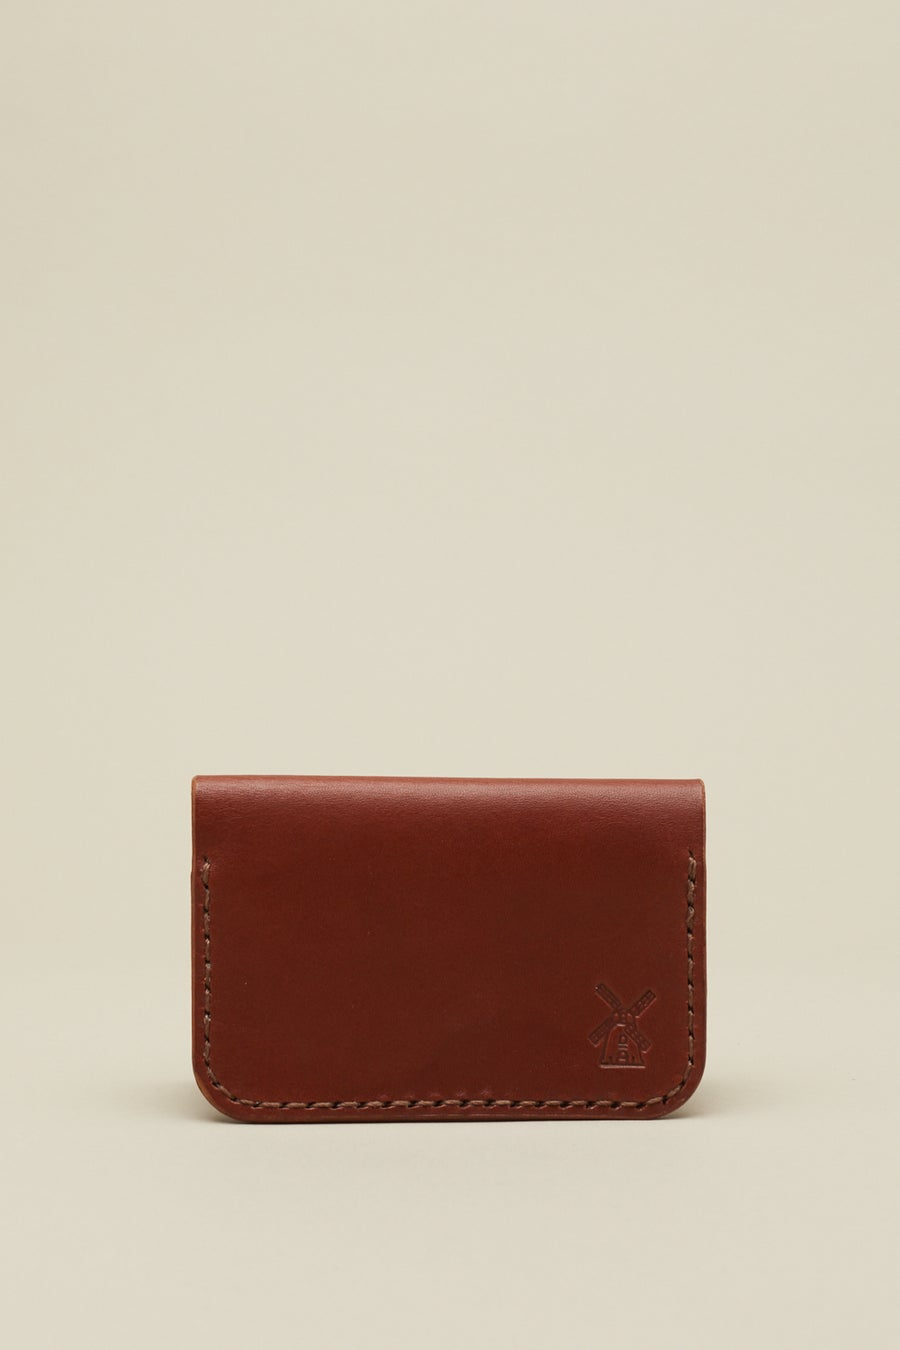 Image of Fold Wallet in Mahogany